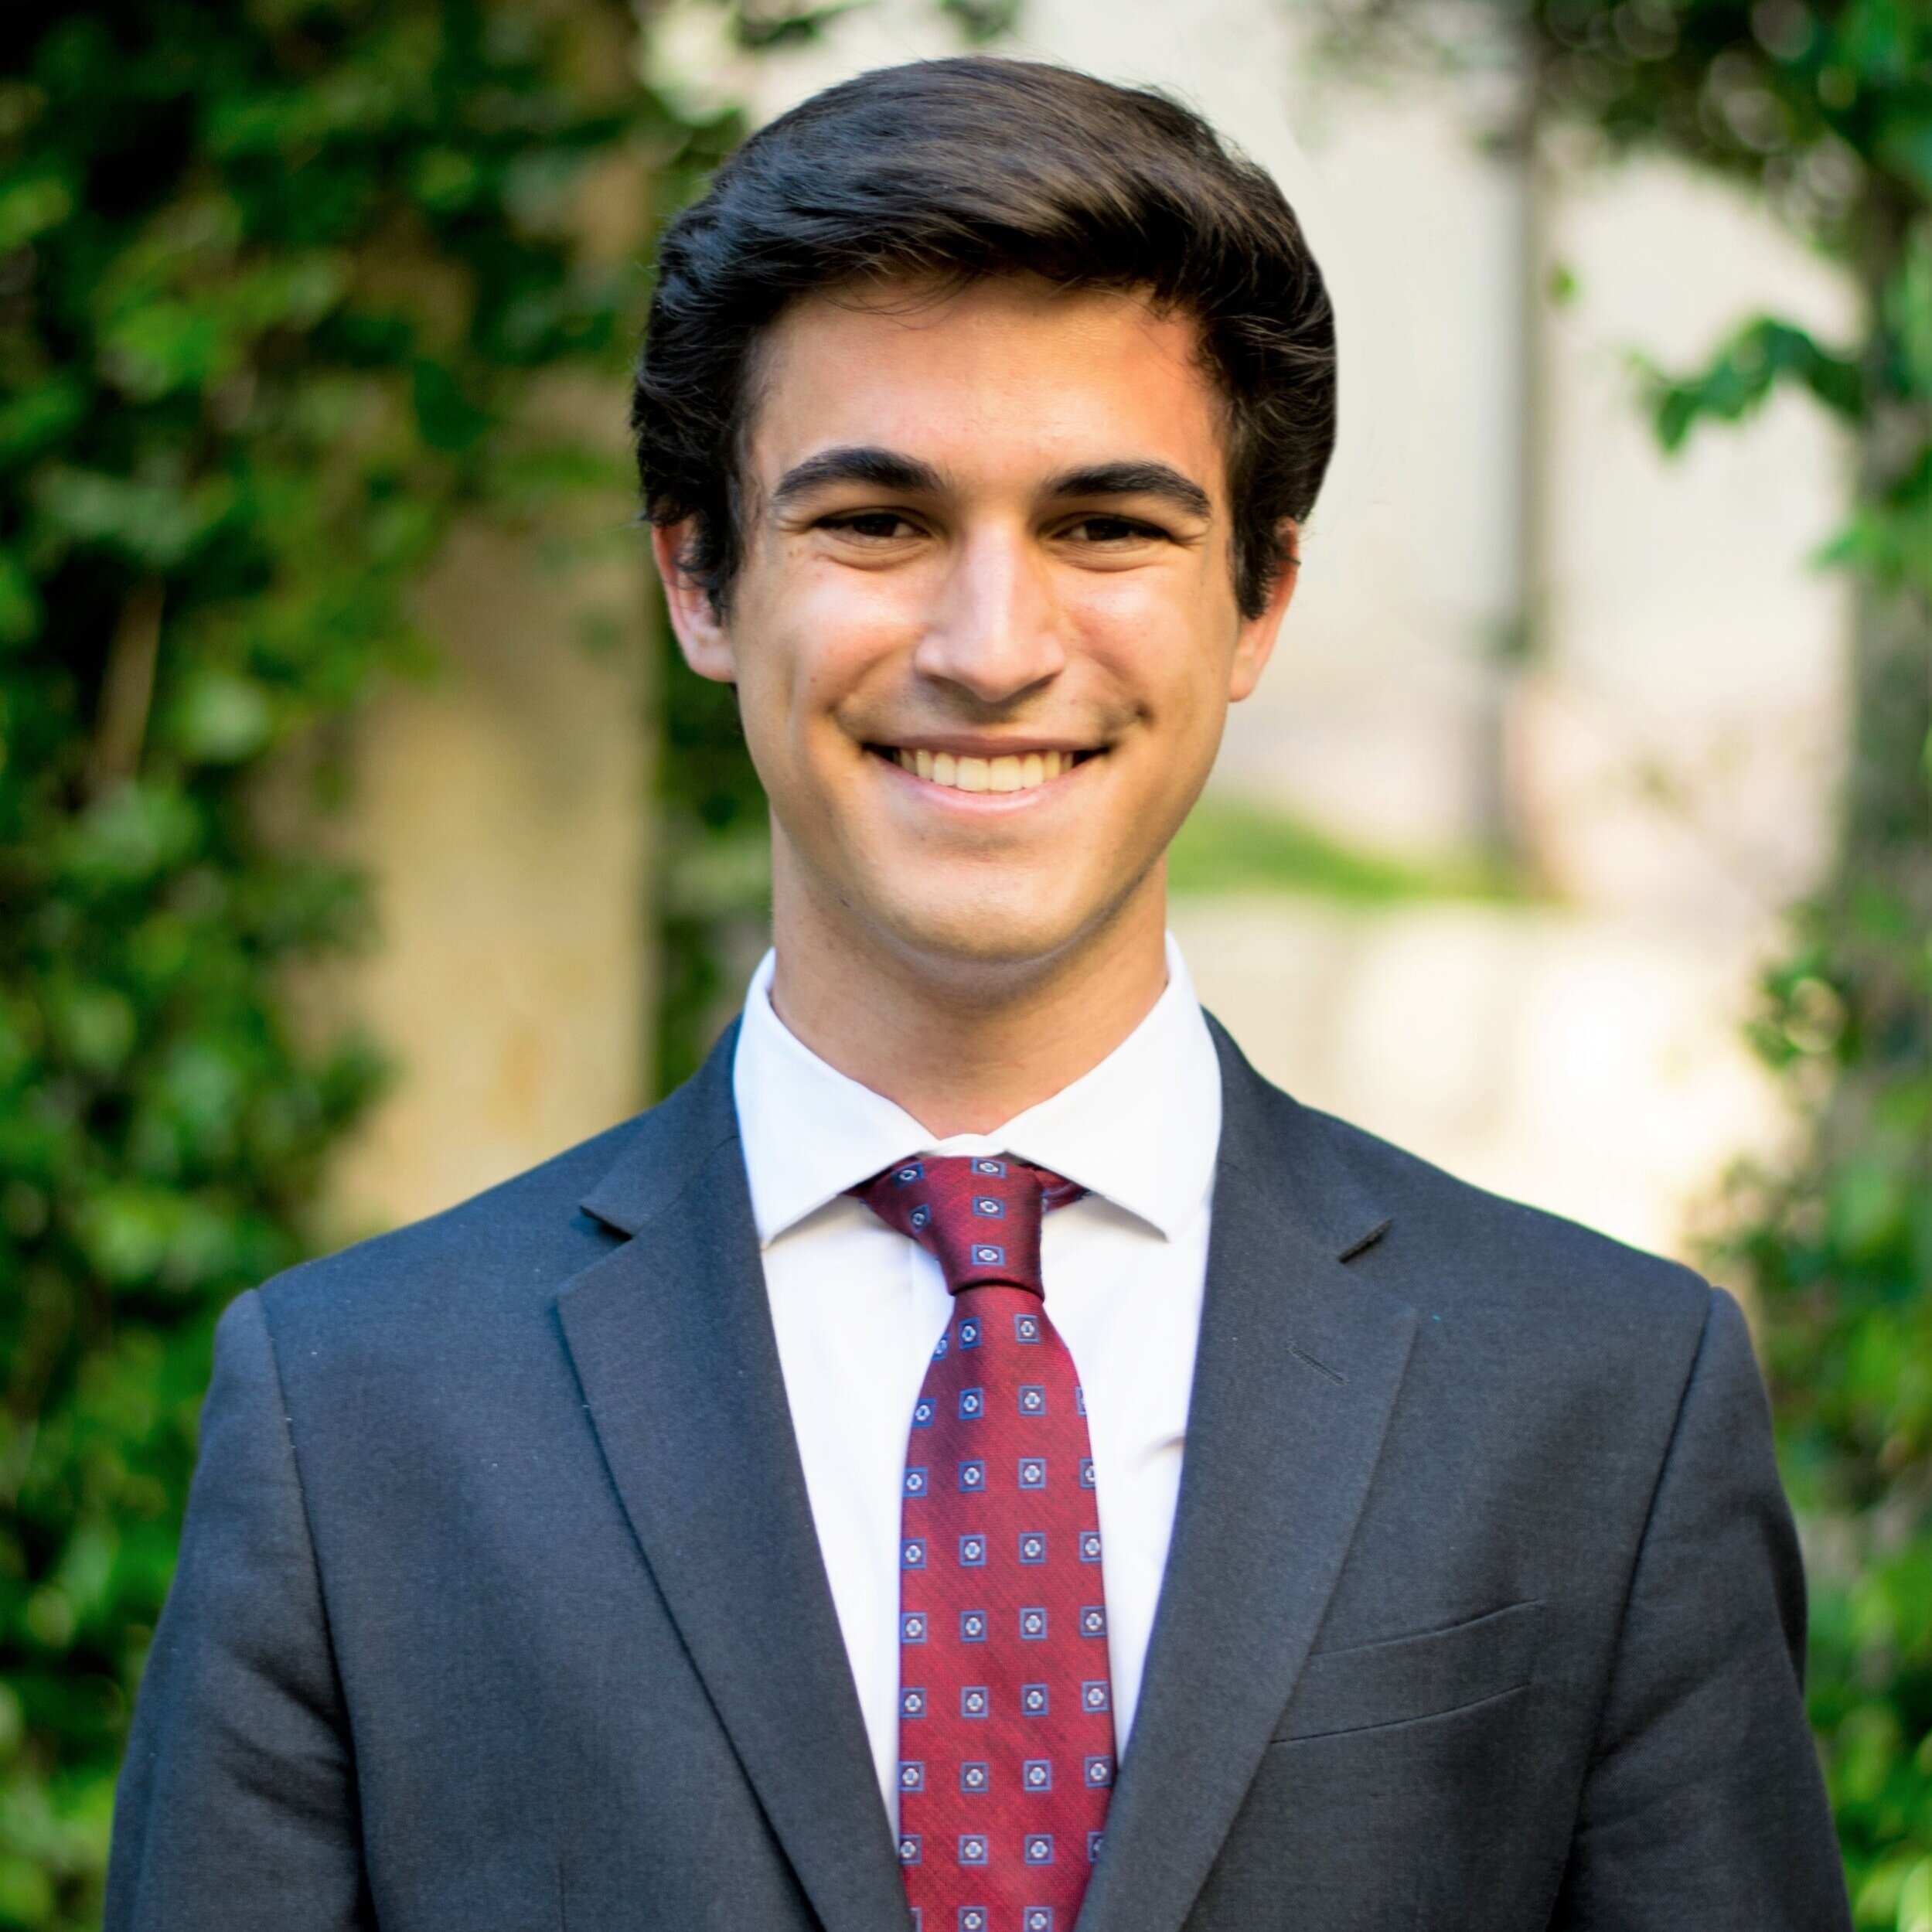 Marshall Comeaux   Dallas, TX CBHP, Plan II, Finance  Class of 2022  Marshall enjoys spending his free time playing ping-pong, devouring episodes of Mad Men, perusing the poetry of T.S. Eliot, and attempting to convince his friends that not all lobbyists are evil. He spent his summer learning how to cook spaghetti while studying international business in Buenos Aires.